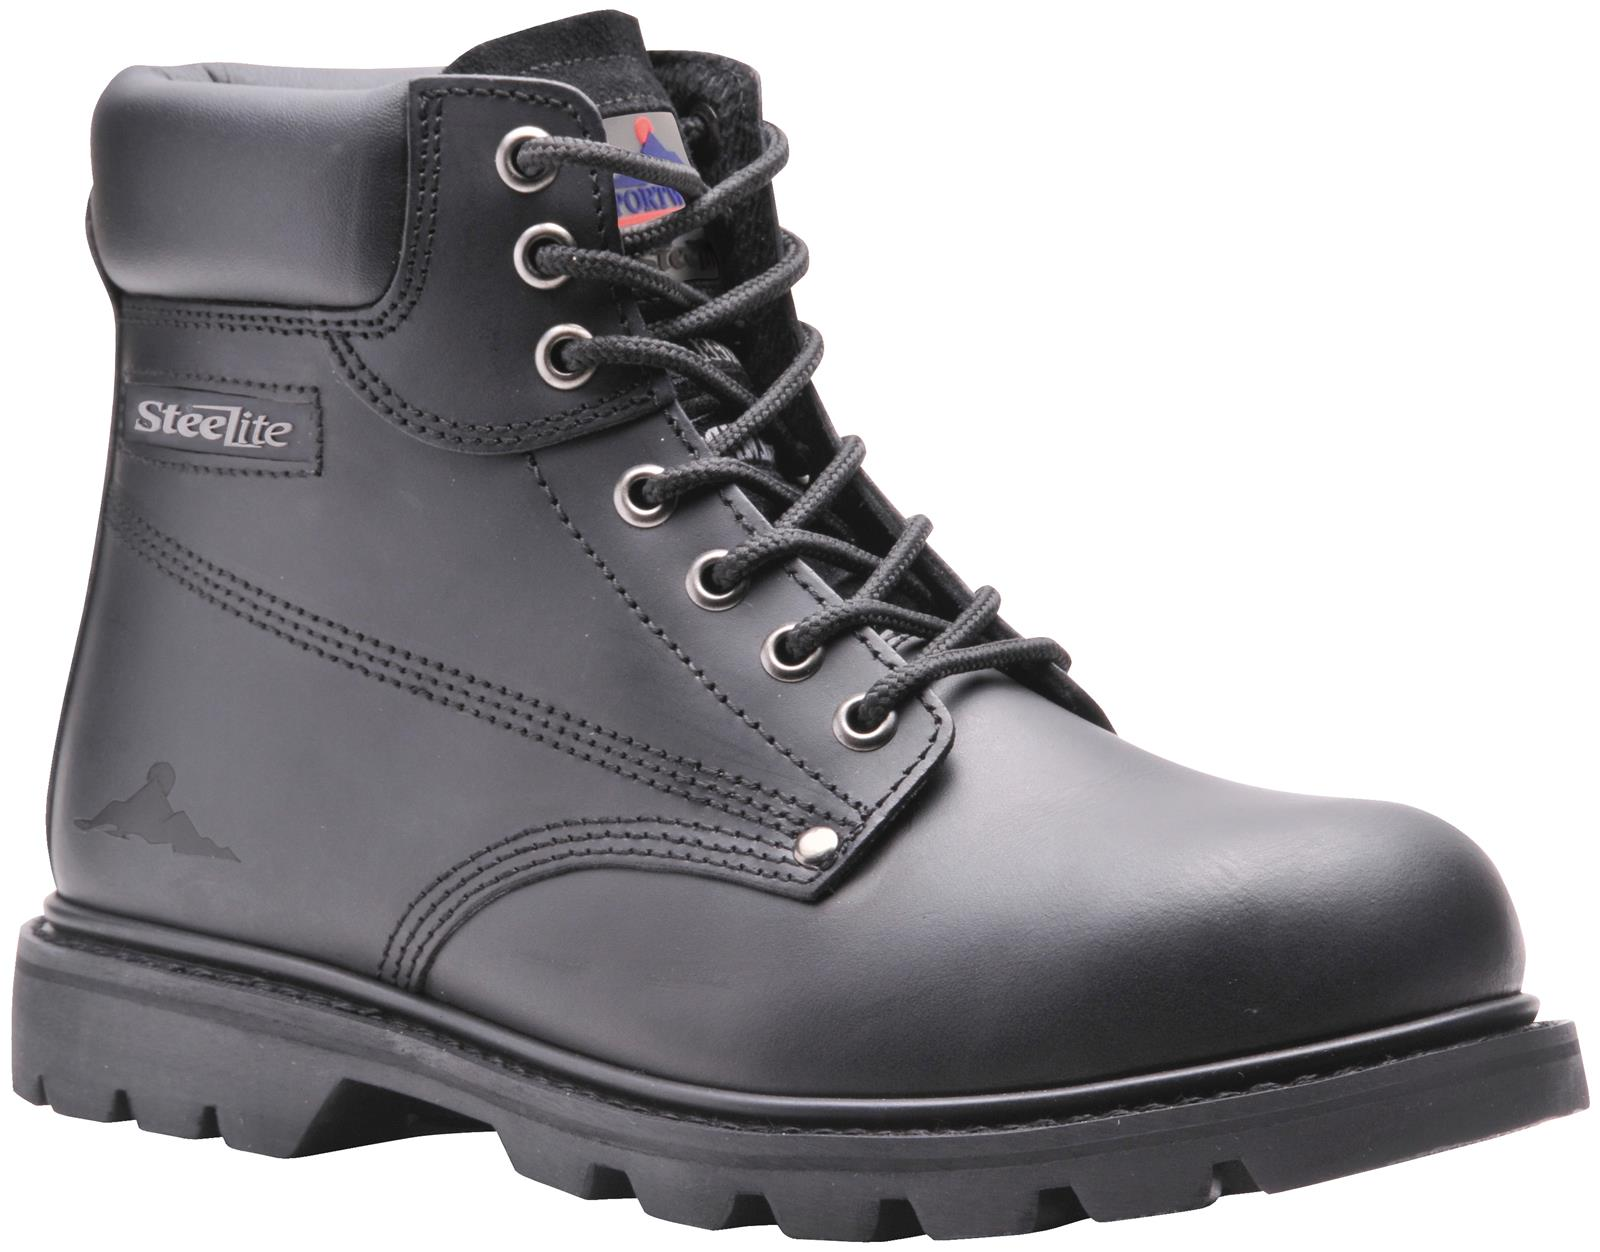 New Hombre Hombre Hombre Portwest Negro Padded Breathable Steelite Welted Safety botas Talla 6-12 6d3a07